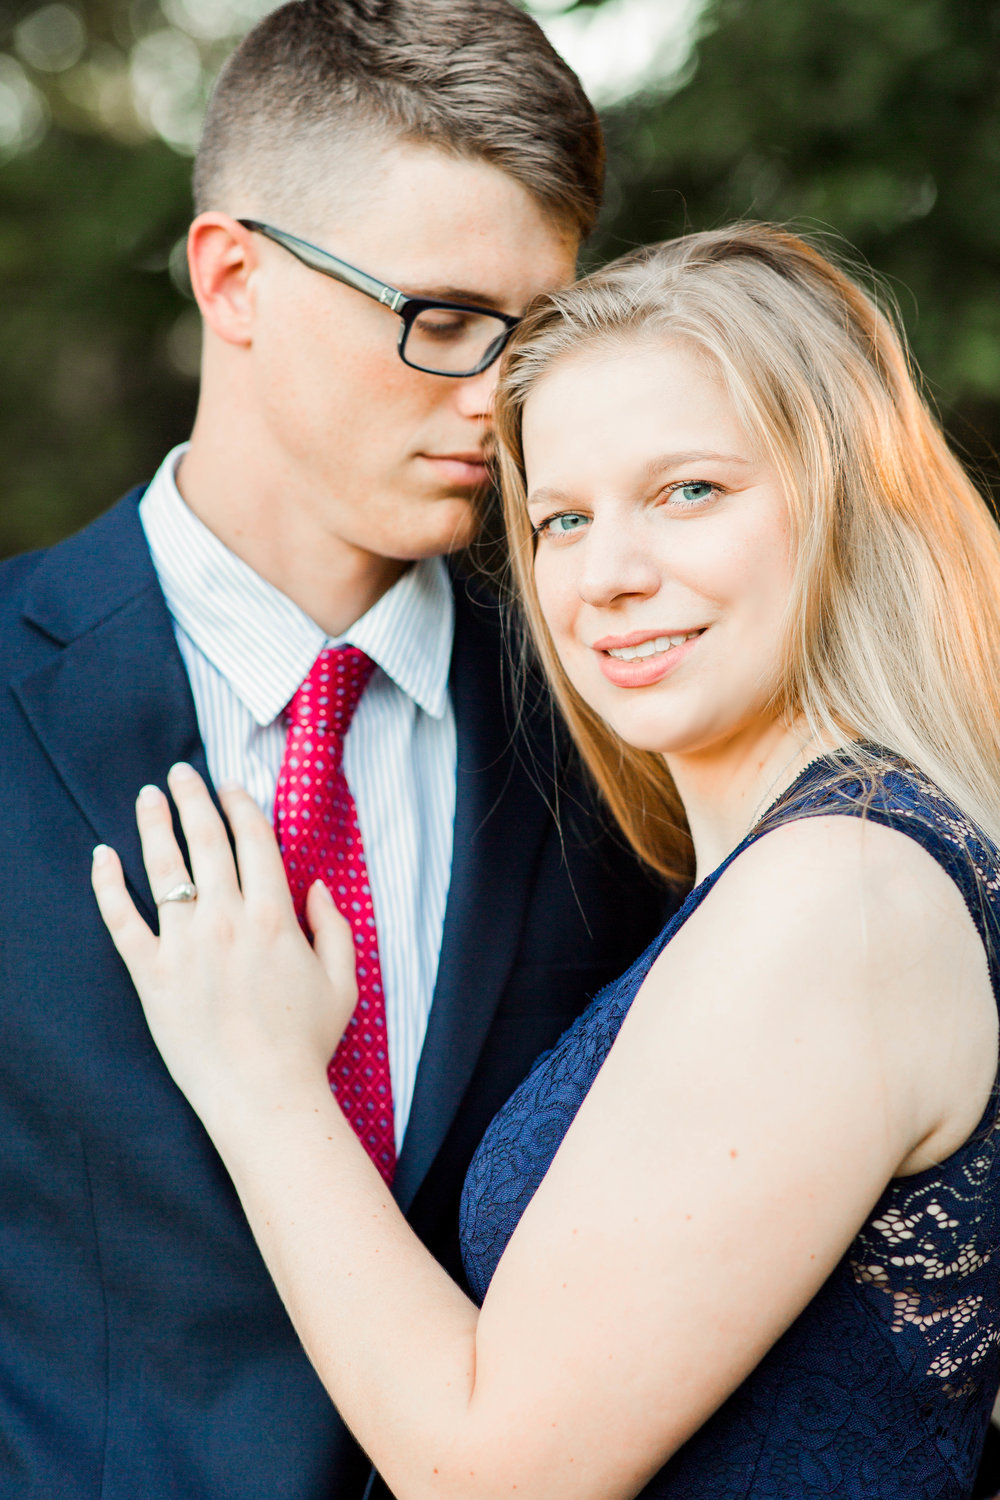 MaryElizabeth_Will_Engagement-103.JPG